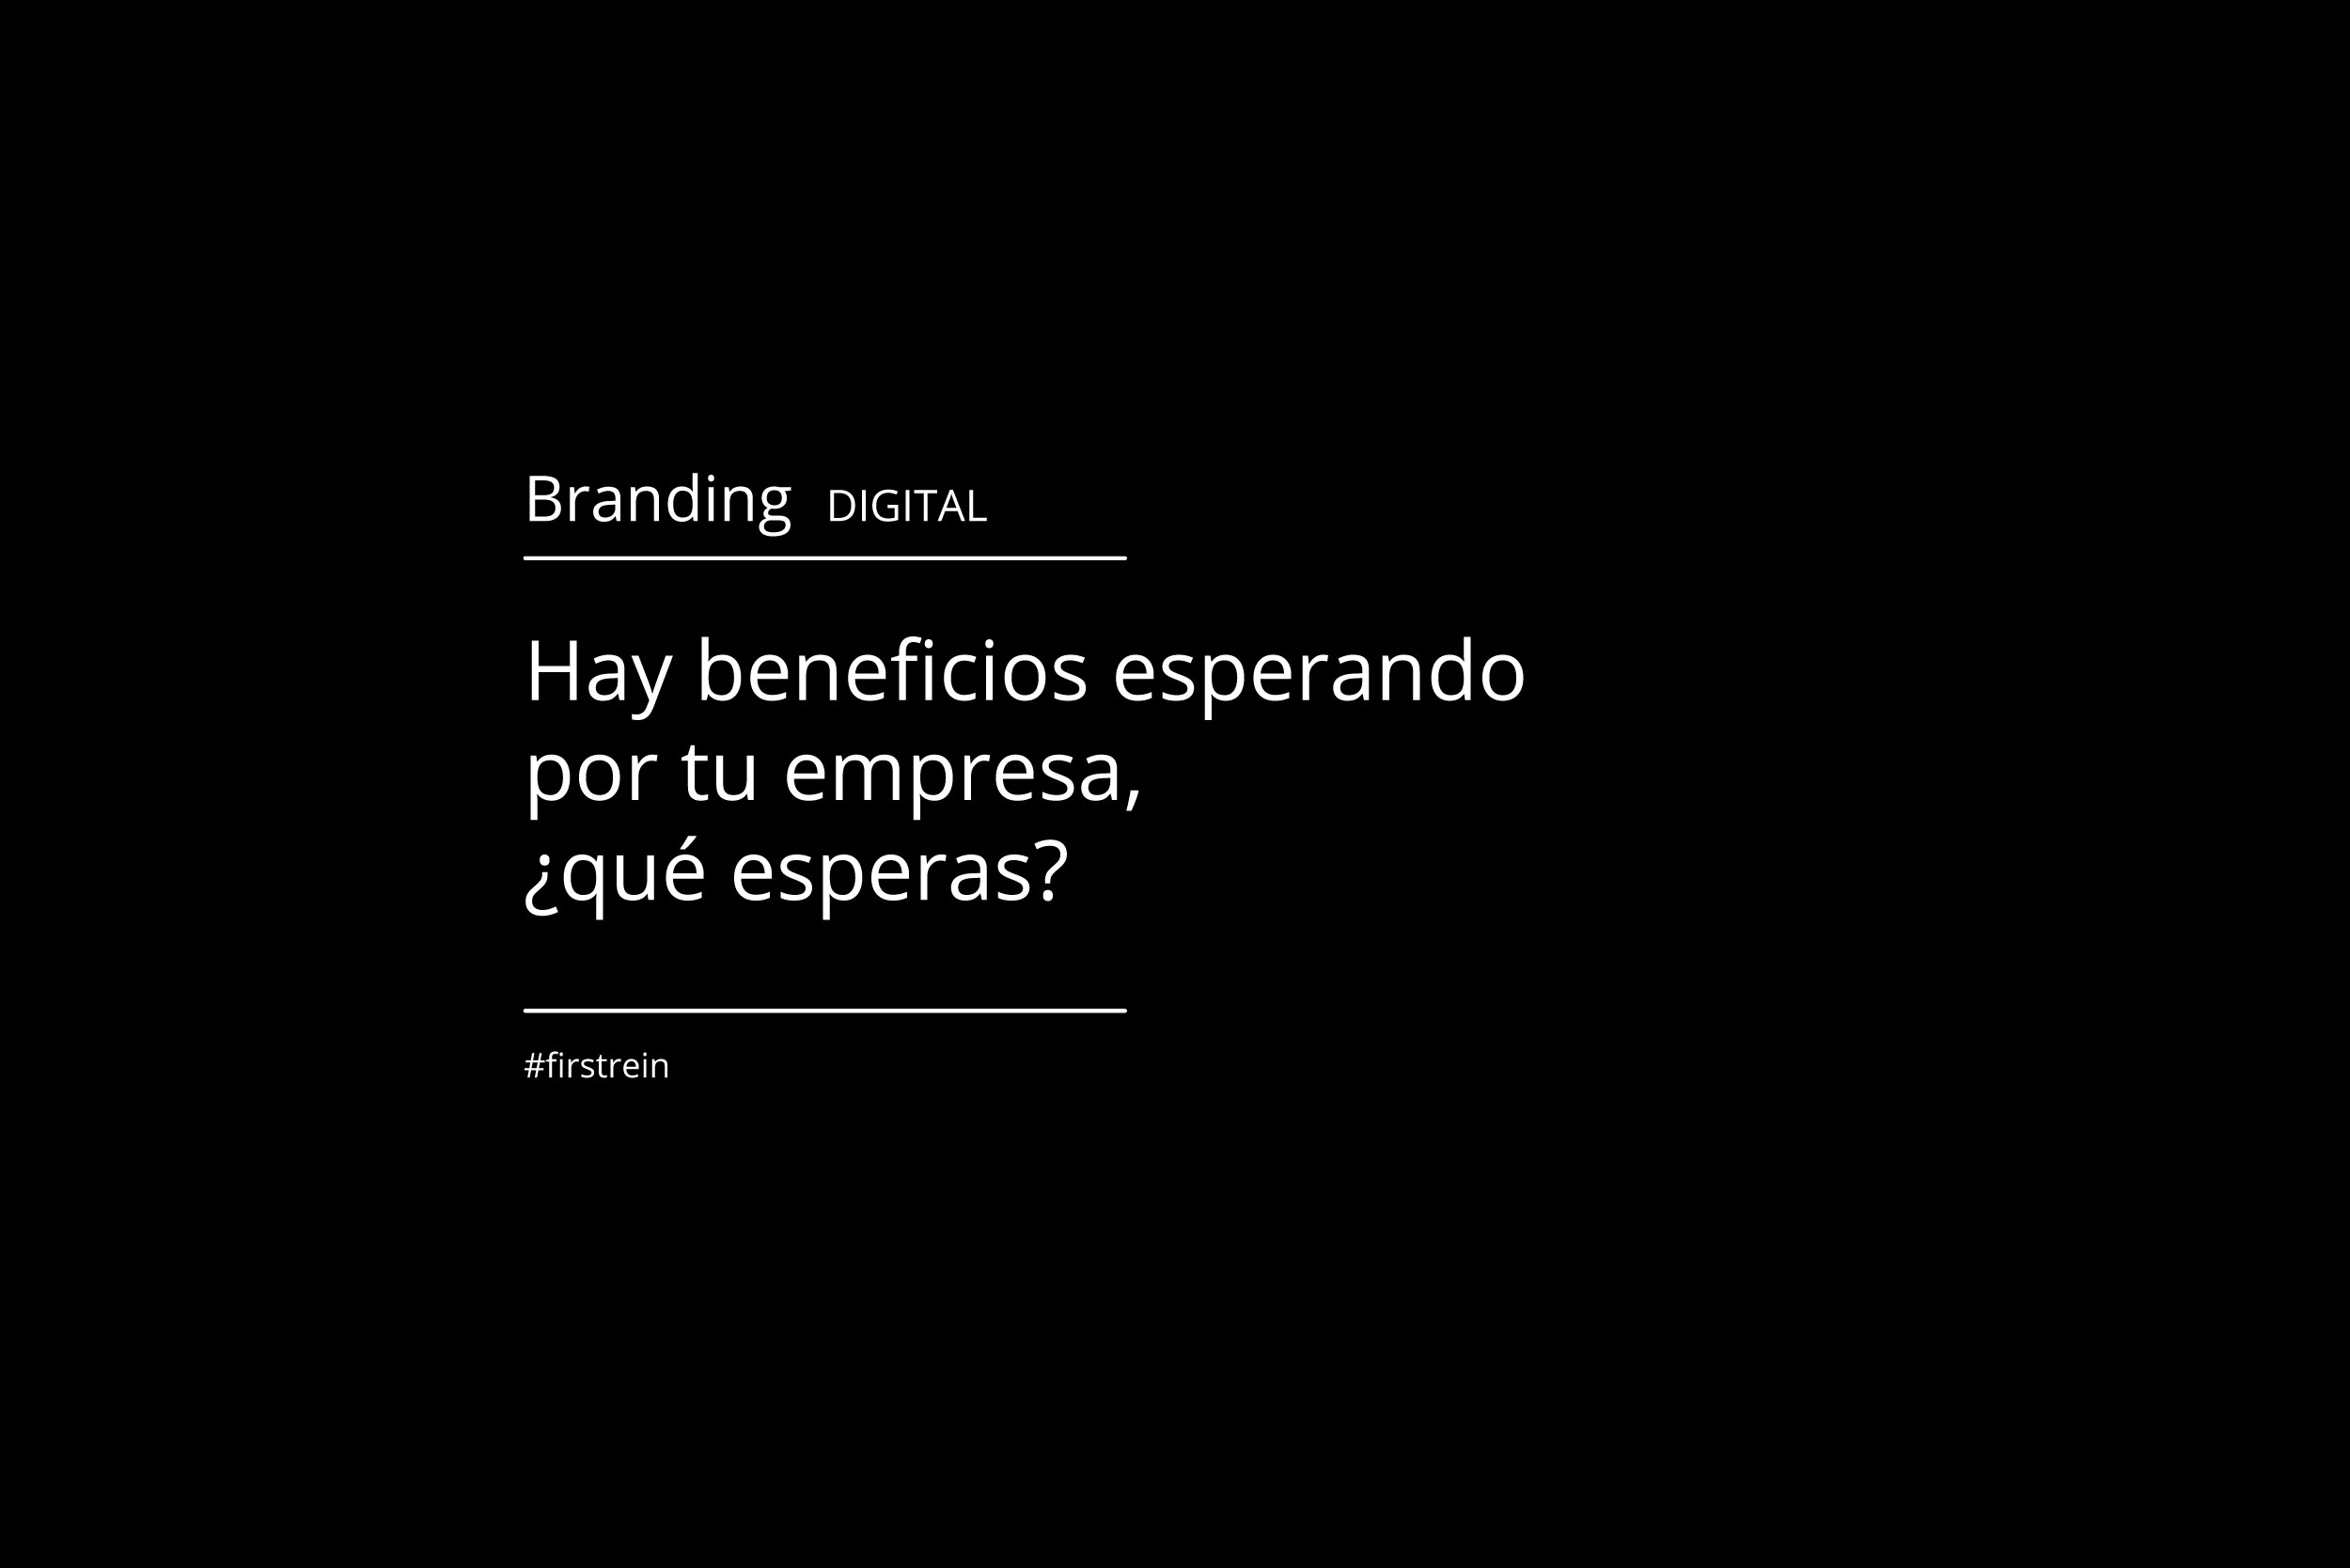 Beneficios del Branding Digital por Firstrein